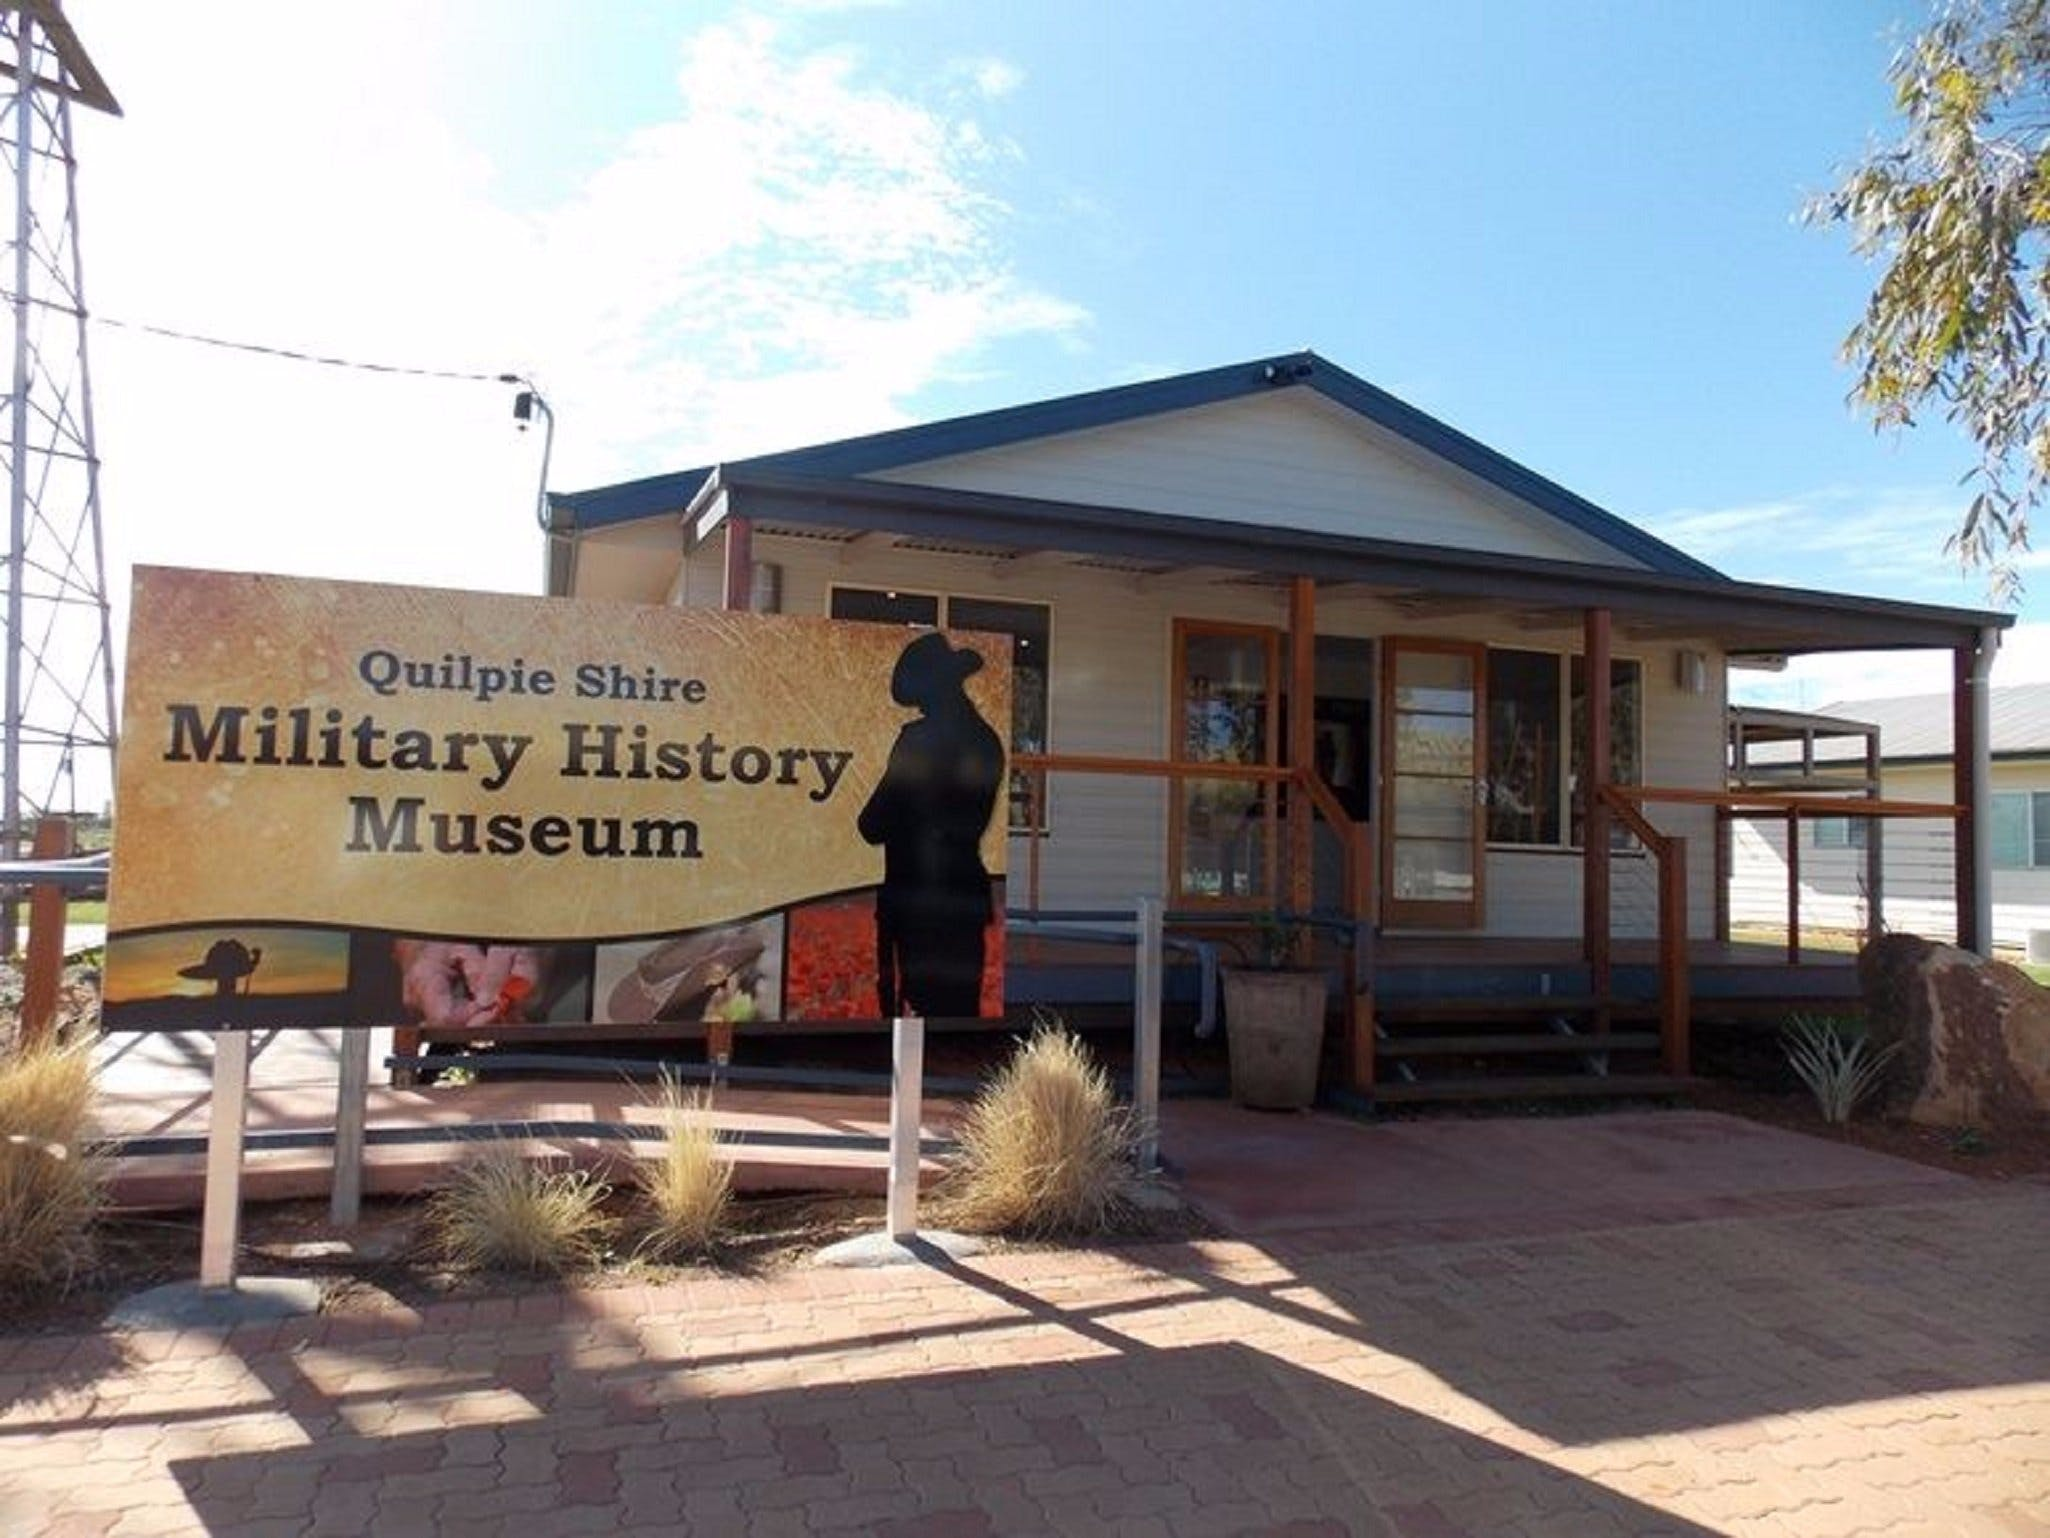 Quilpie Shire Military History Museum - Tourism Gold Coast